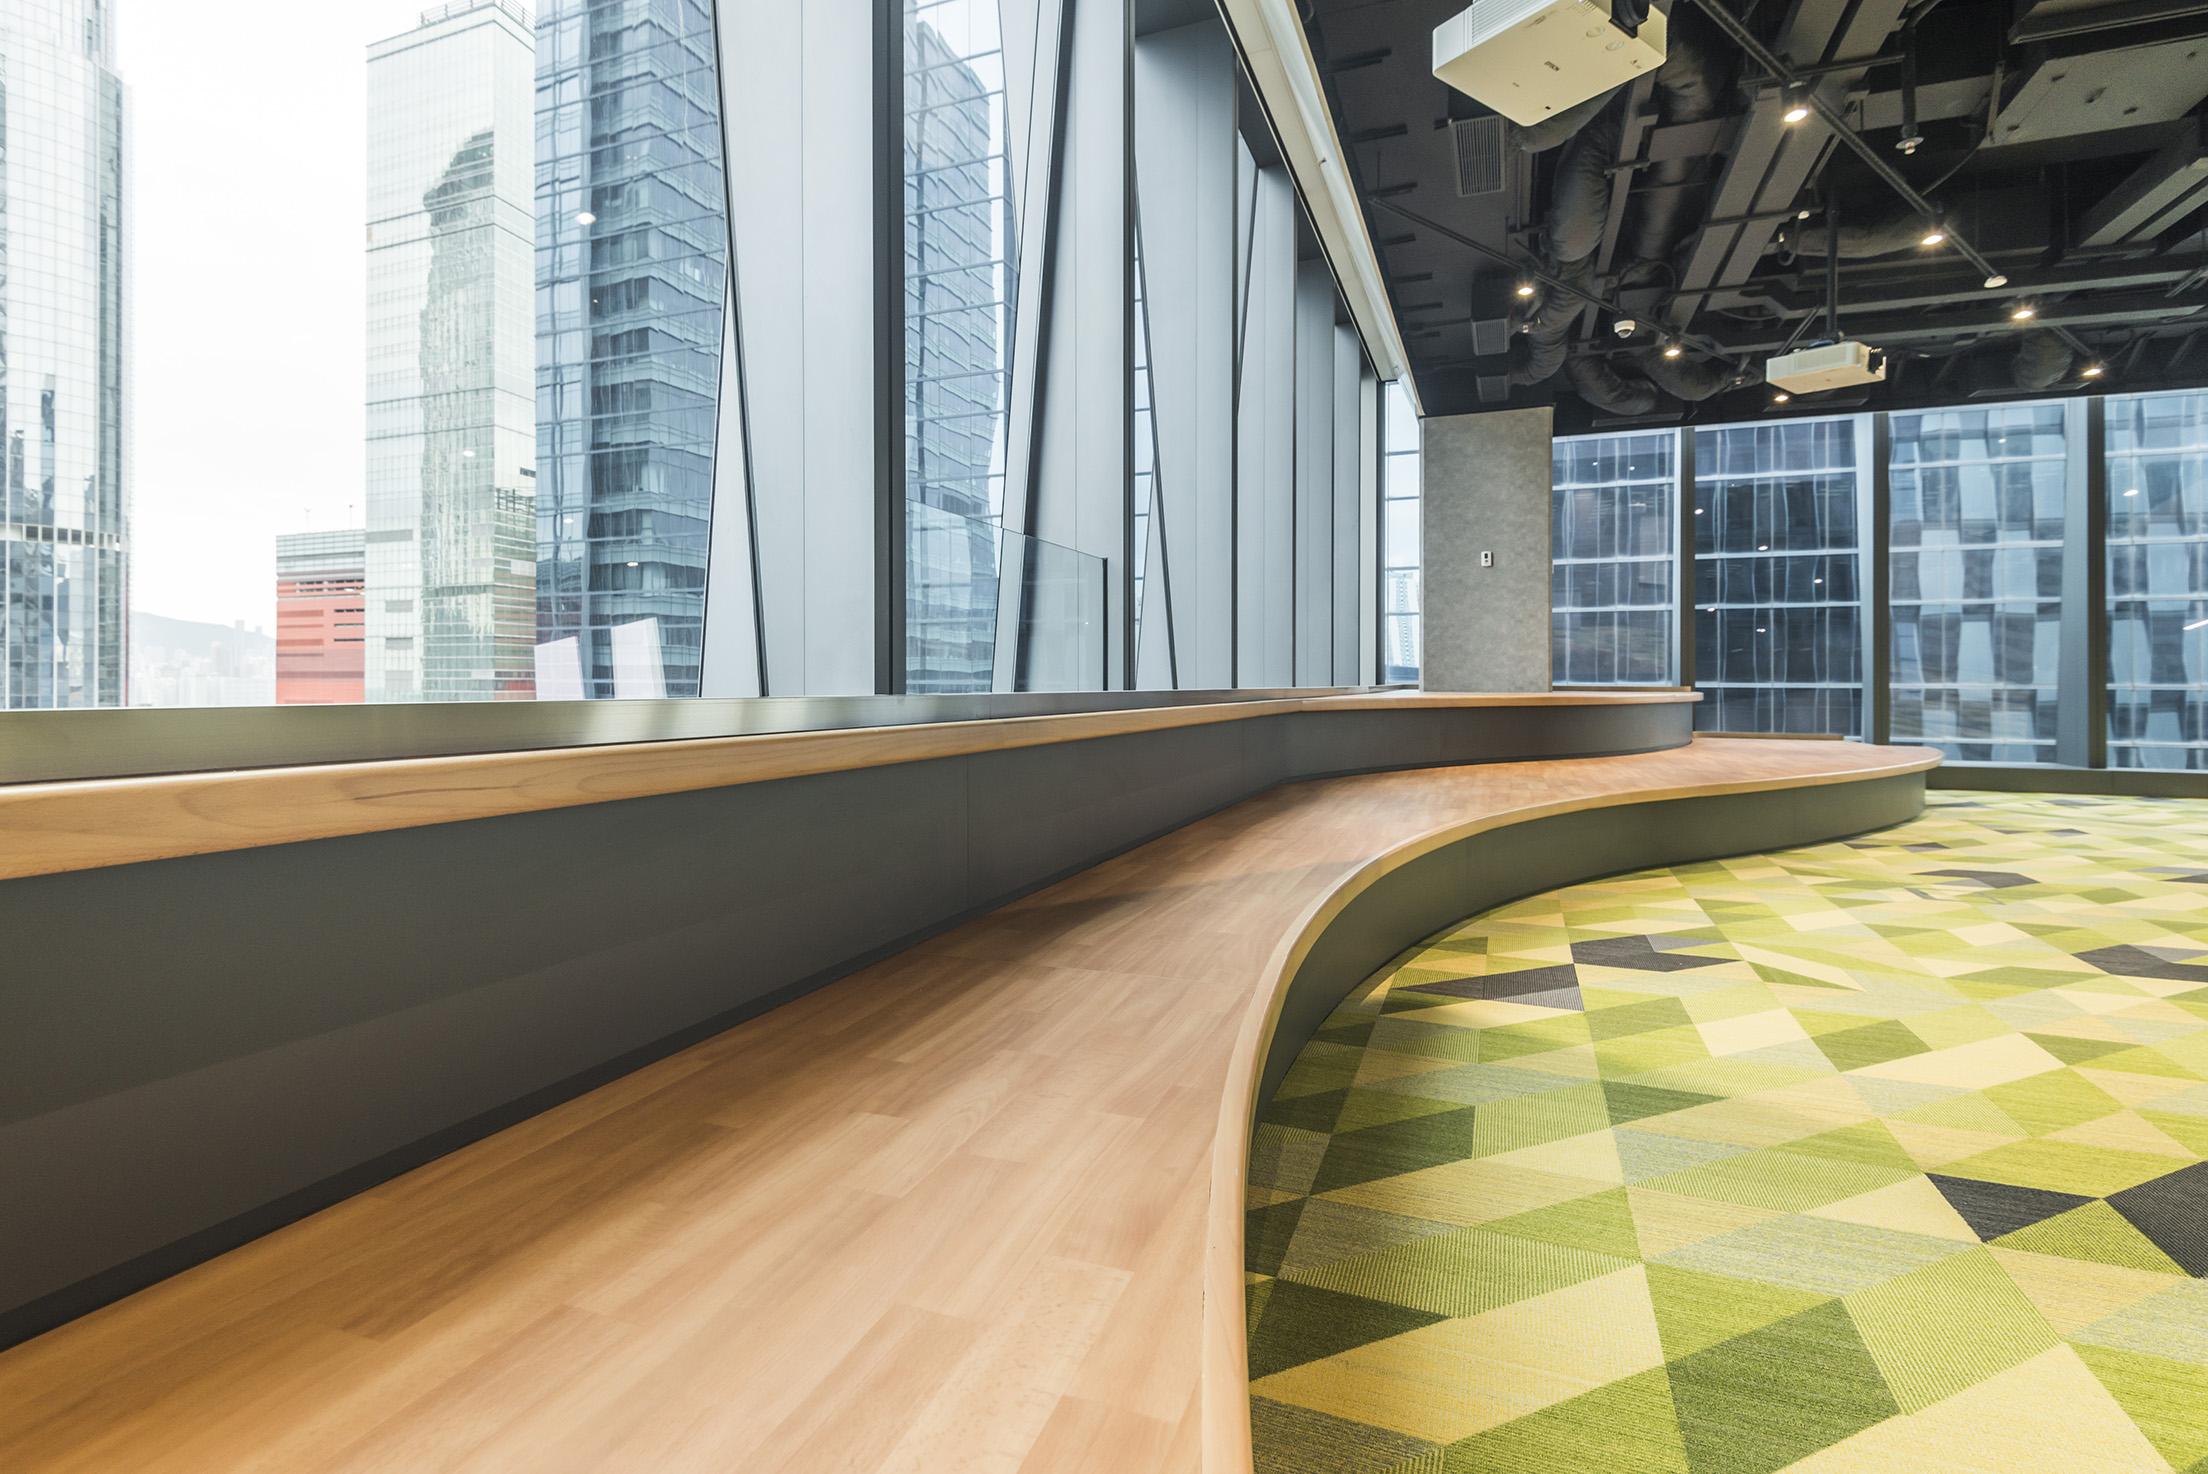 jeb-architecturalfinishes-compac-forbo-resinpanel-office-hk-12.jpg